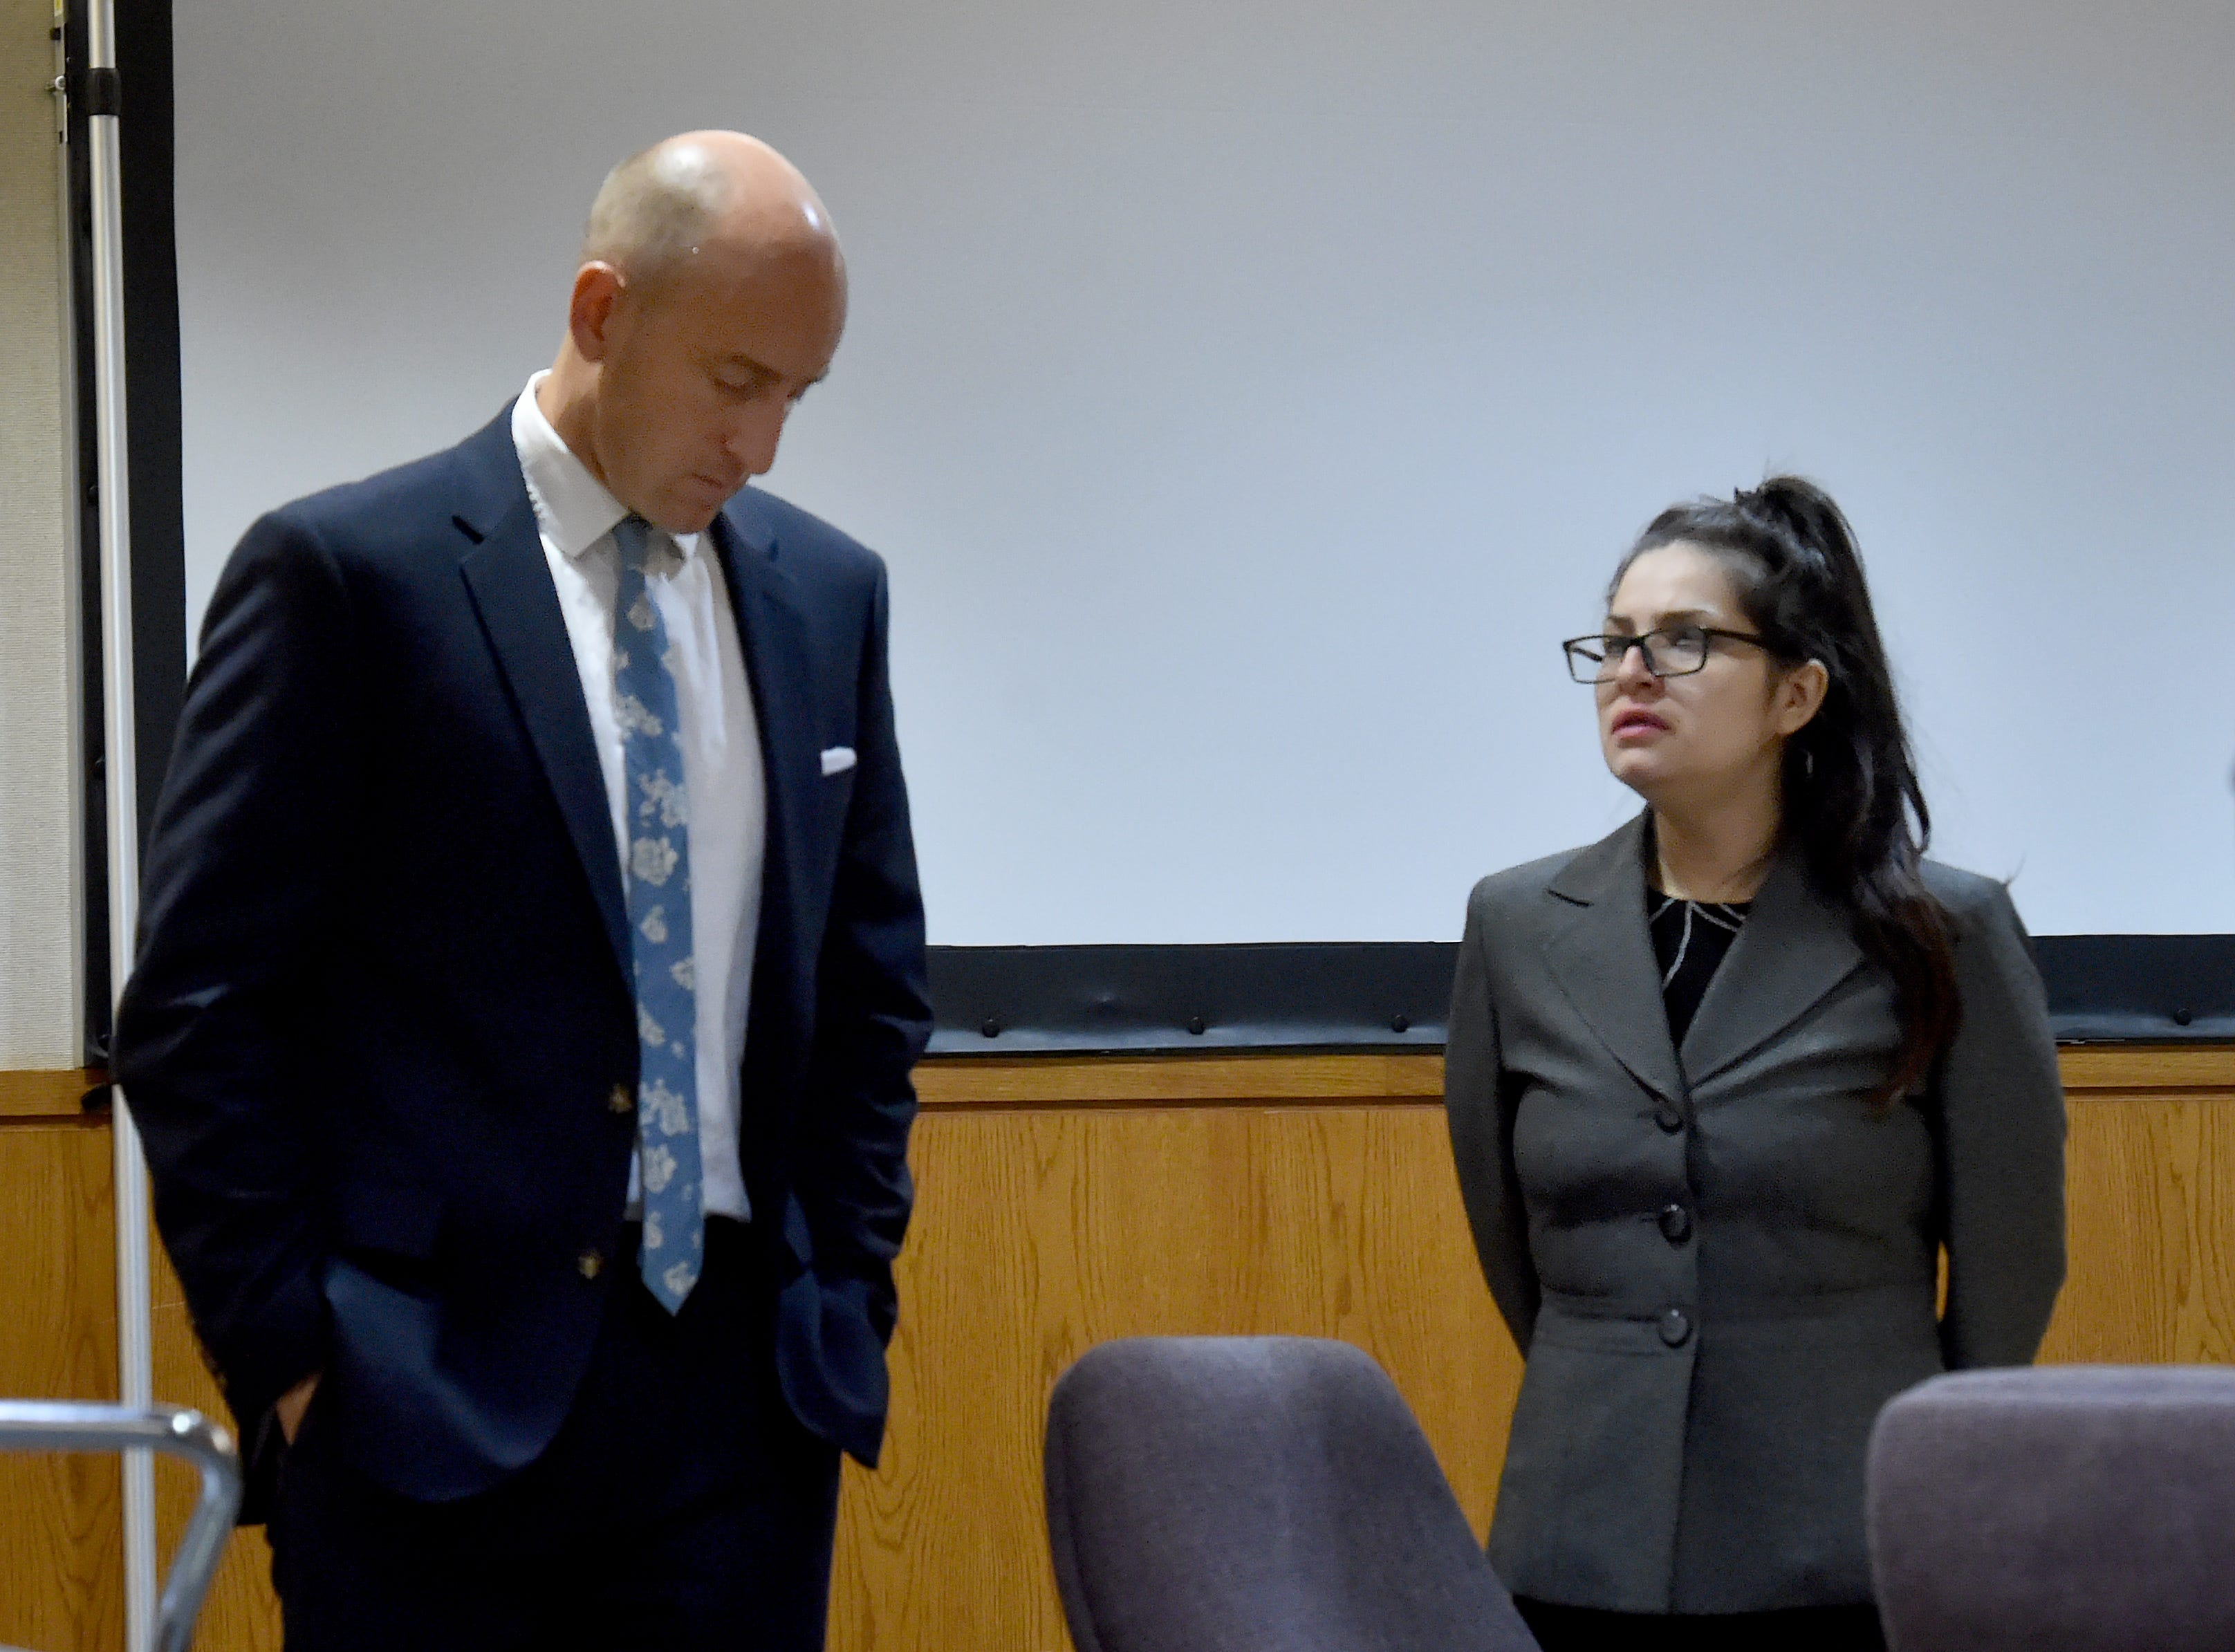 Defendent Mayra Chavez and Deputy Public Defender Michael Albers watch as jurors leave the courtroom on Thursday morning after the defense rested. Chavez has pleaded not guilty to second-degree murder charges in the death of her 3-year-old daughter Kimberly Lopez.